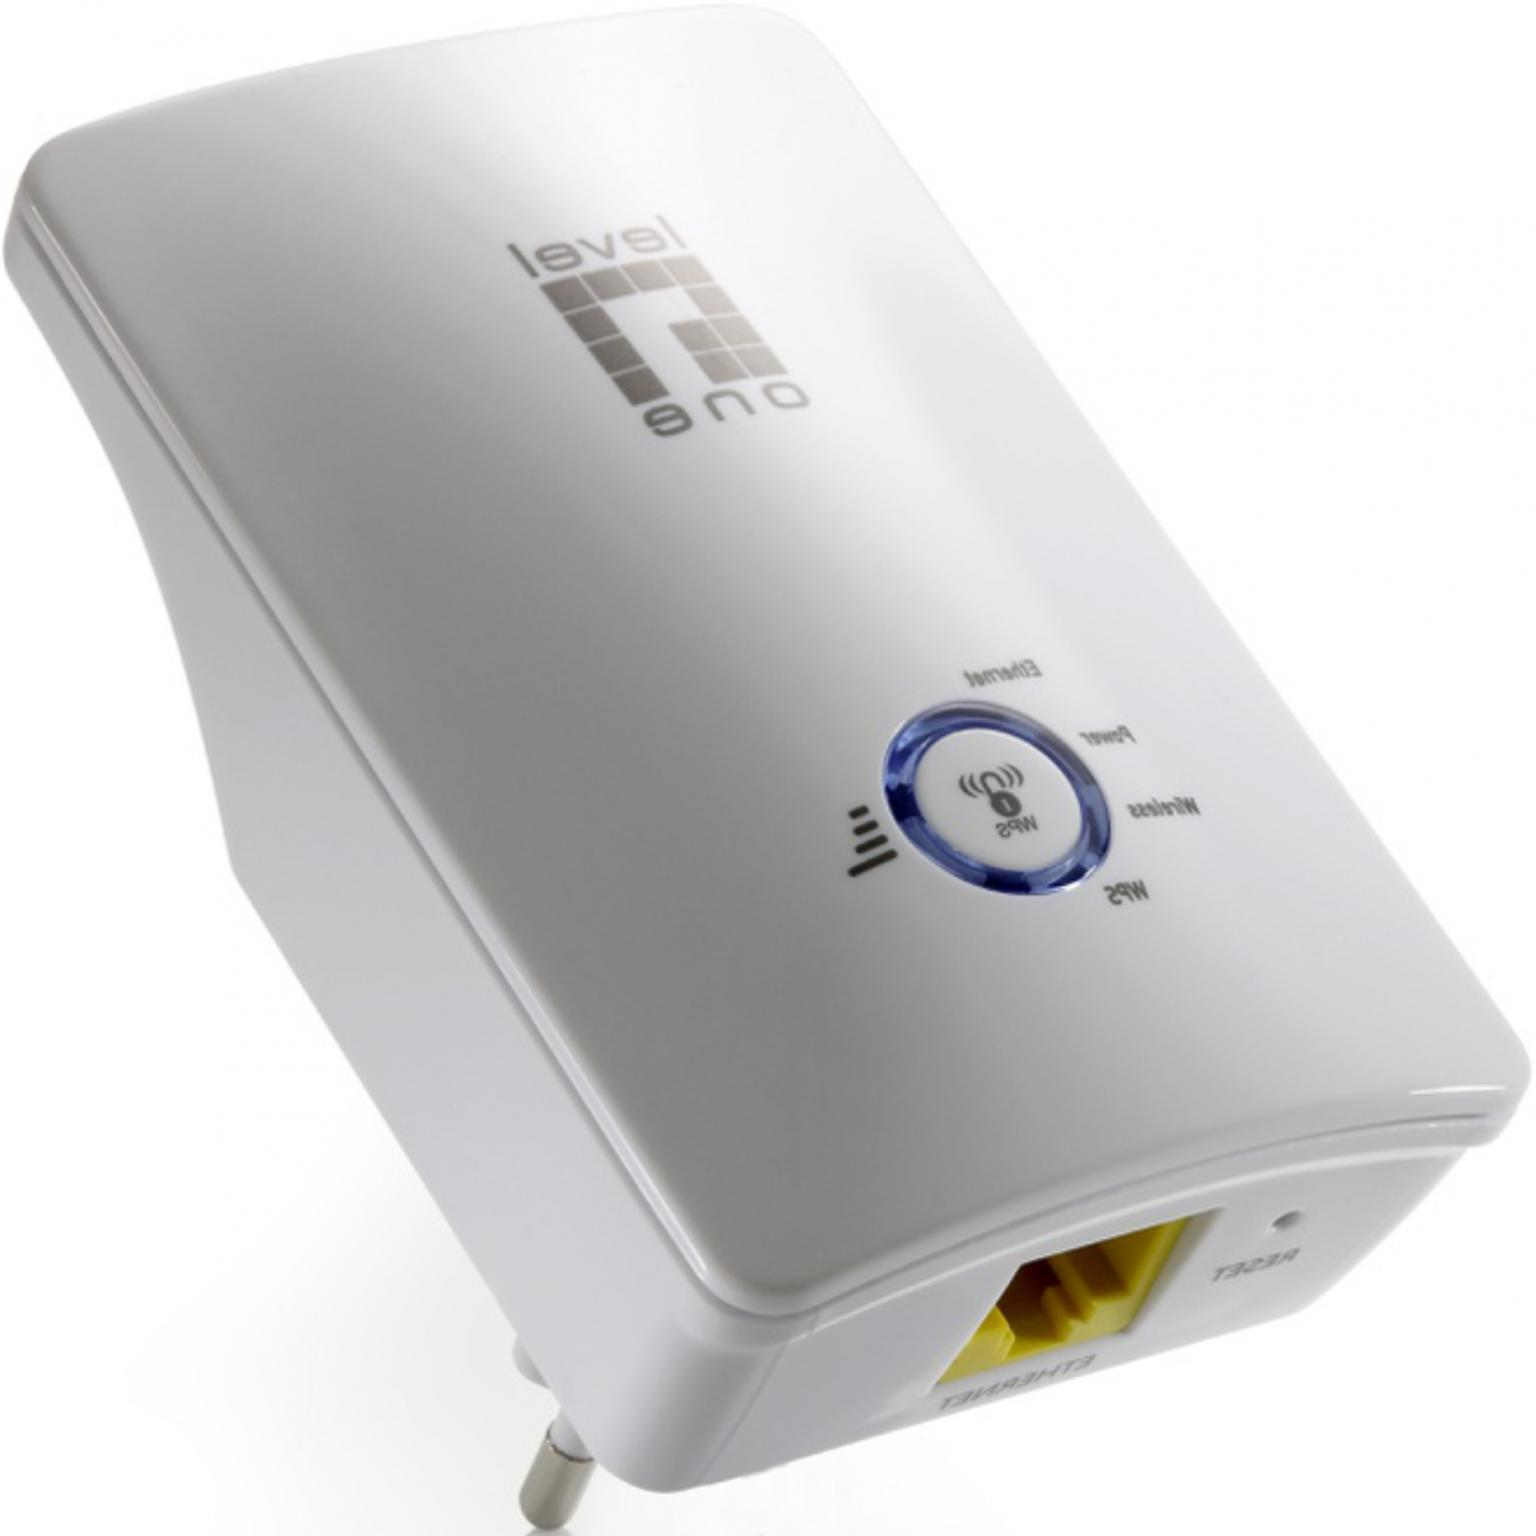 WiFi Repeater - 300 Mbps - LevelOne